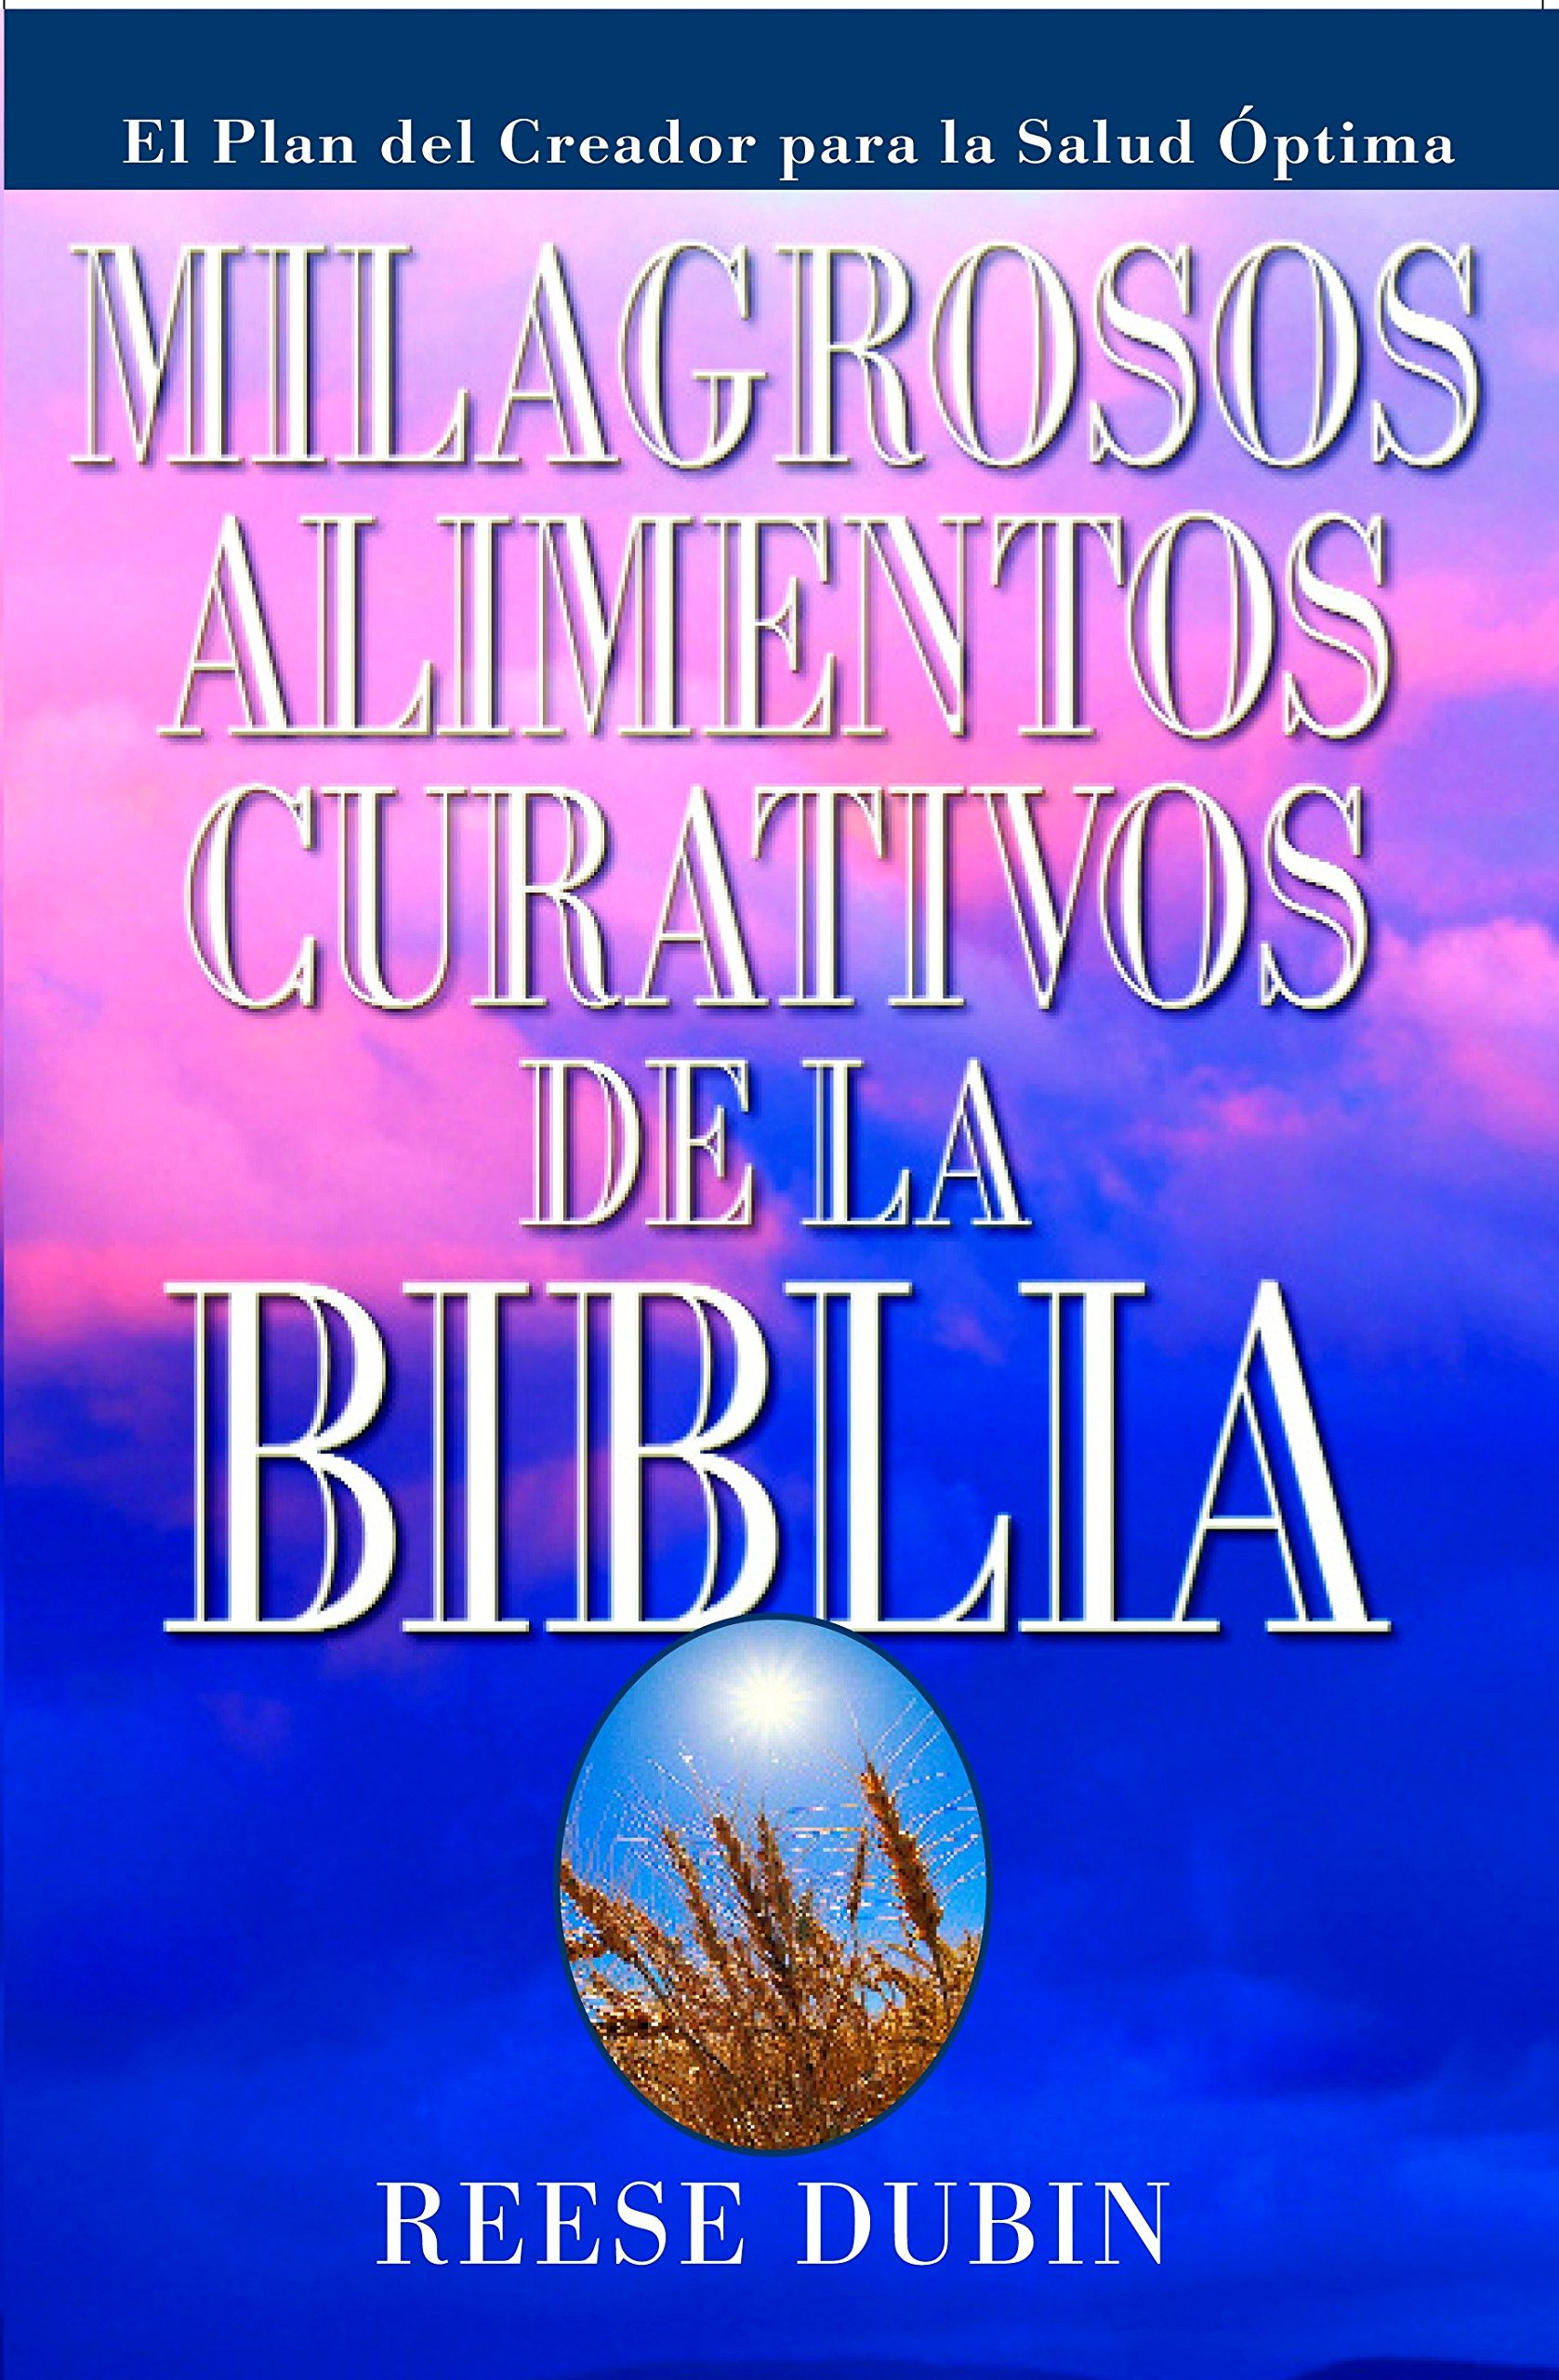 Milagrosos Alimentos Curativos De La Biblia by Prentice Hall Press